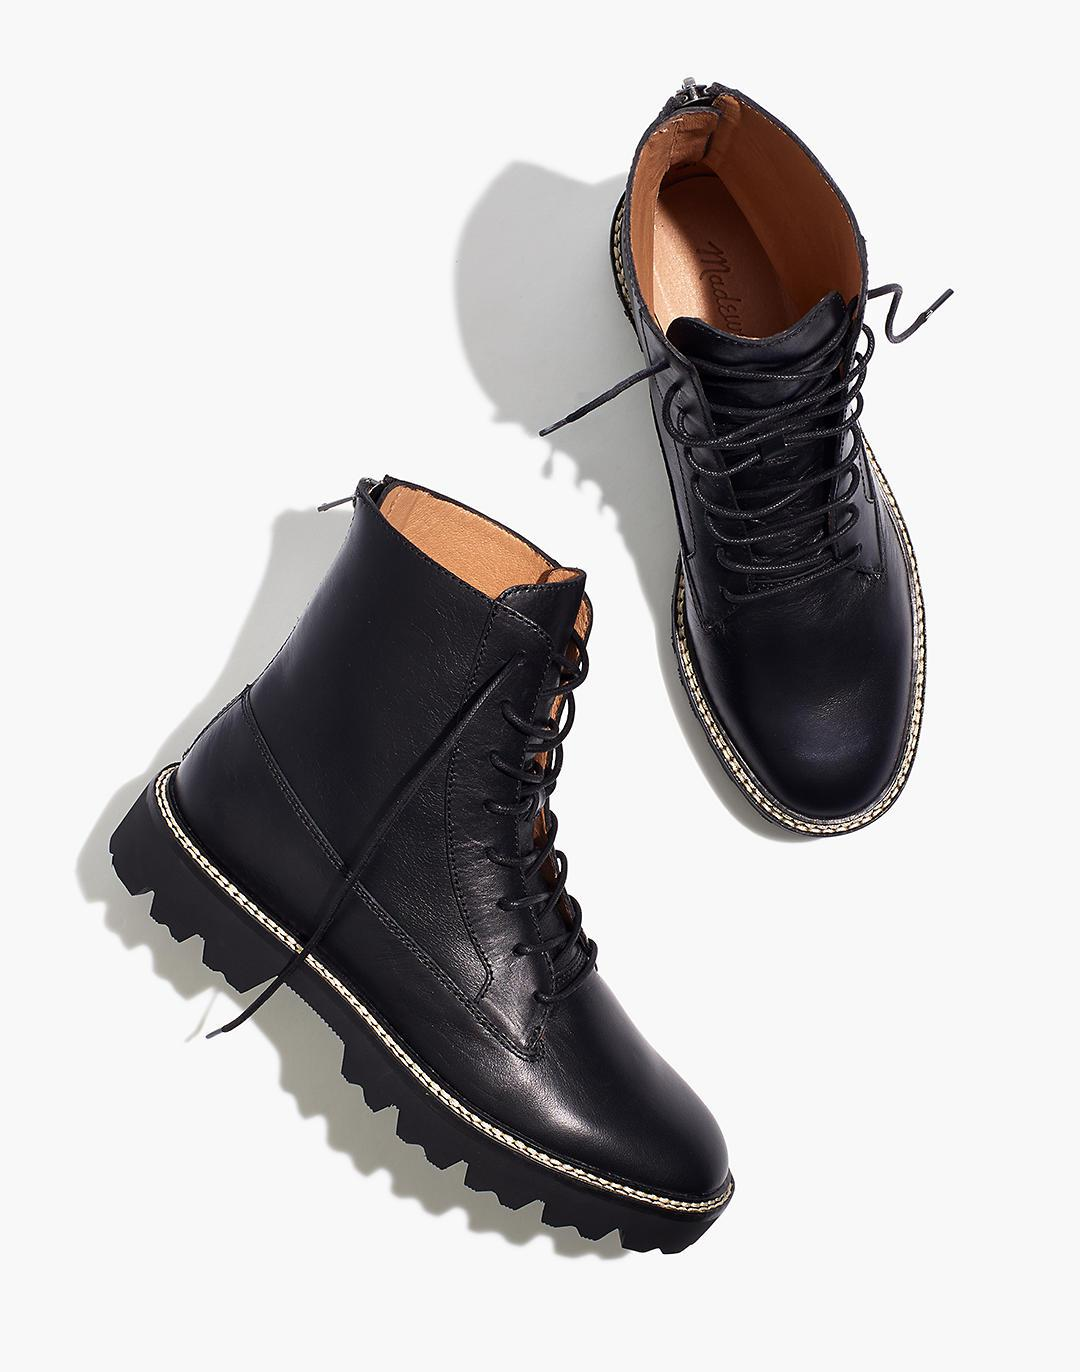 The Citywalk Lugsole Lace-Up Boot in Leather